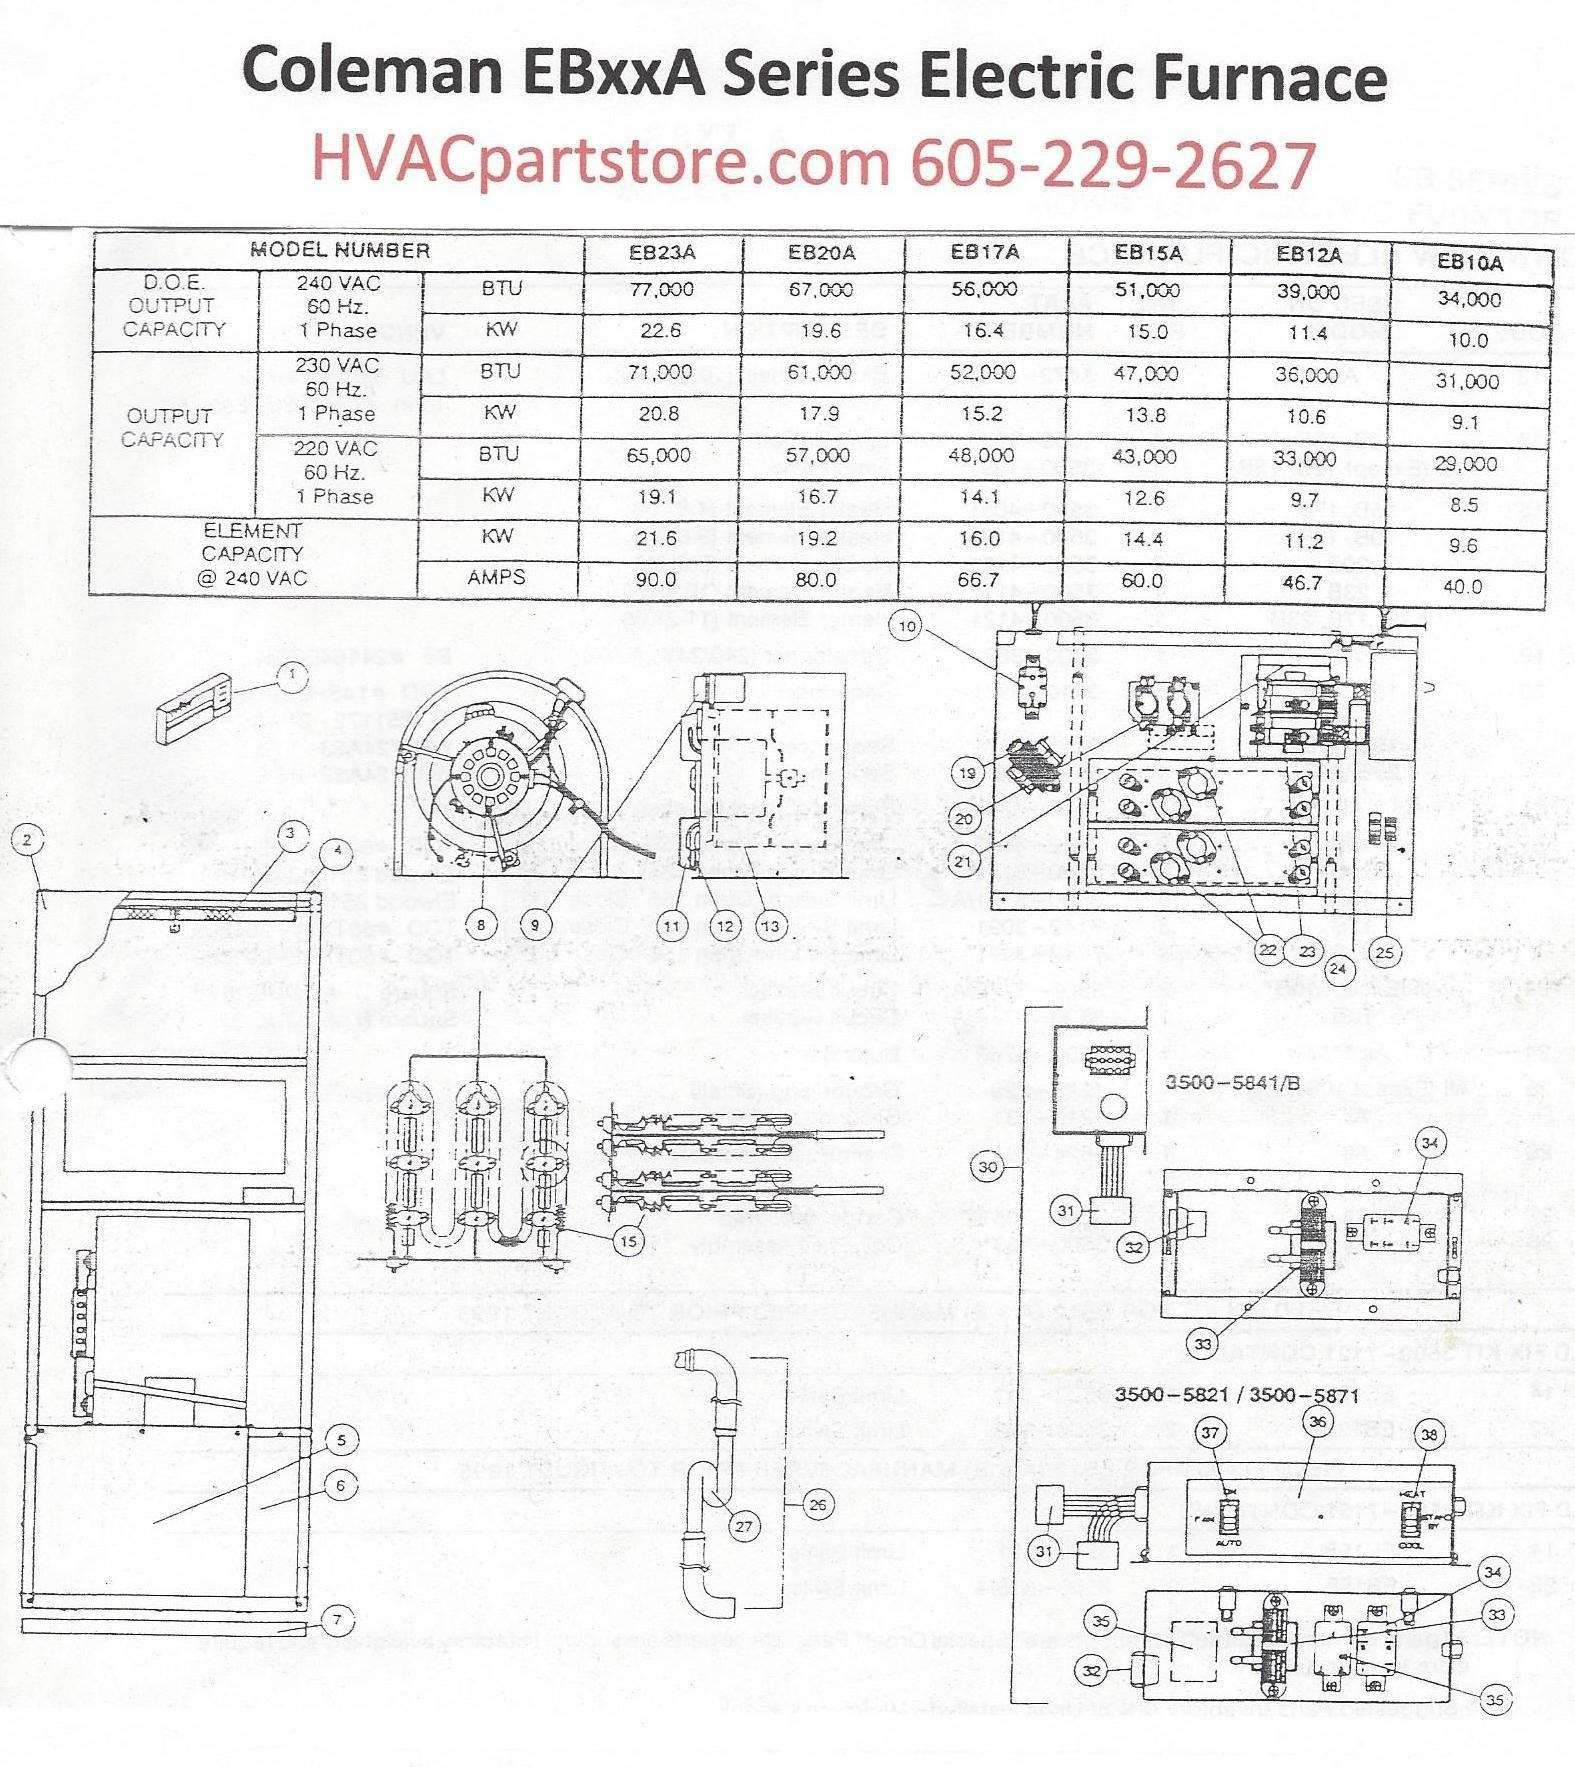 Wiring Diagram Electrical Wiring Diagram Electrical Trailer Wiring Diagram Hvac Design Diagram